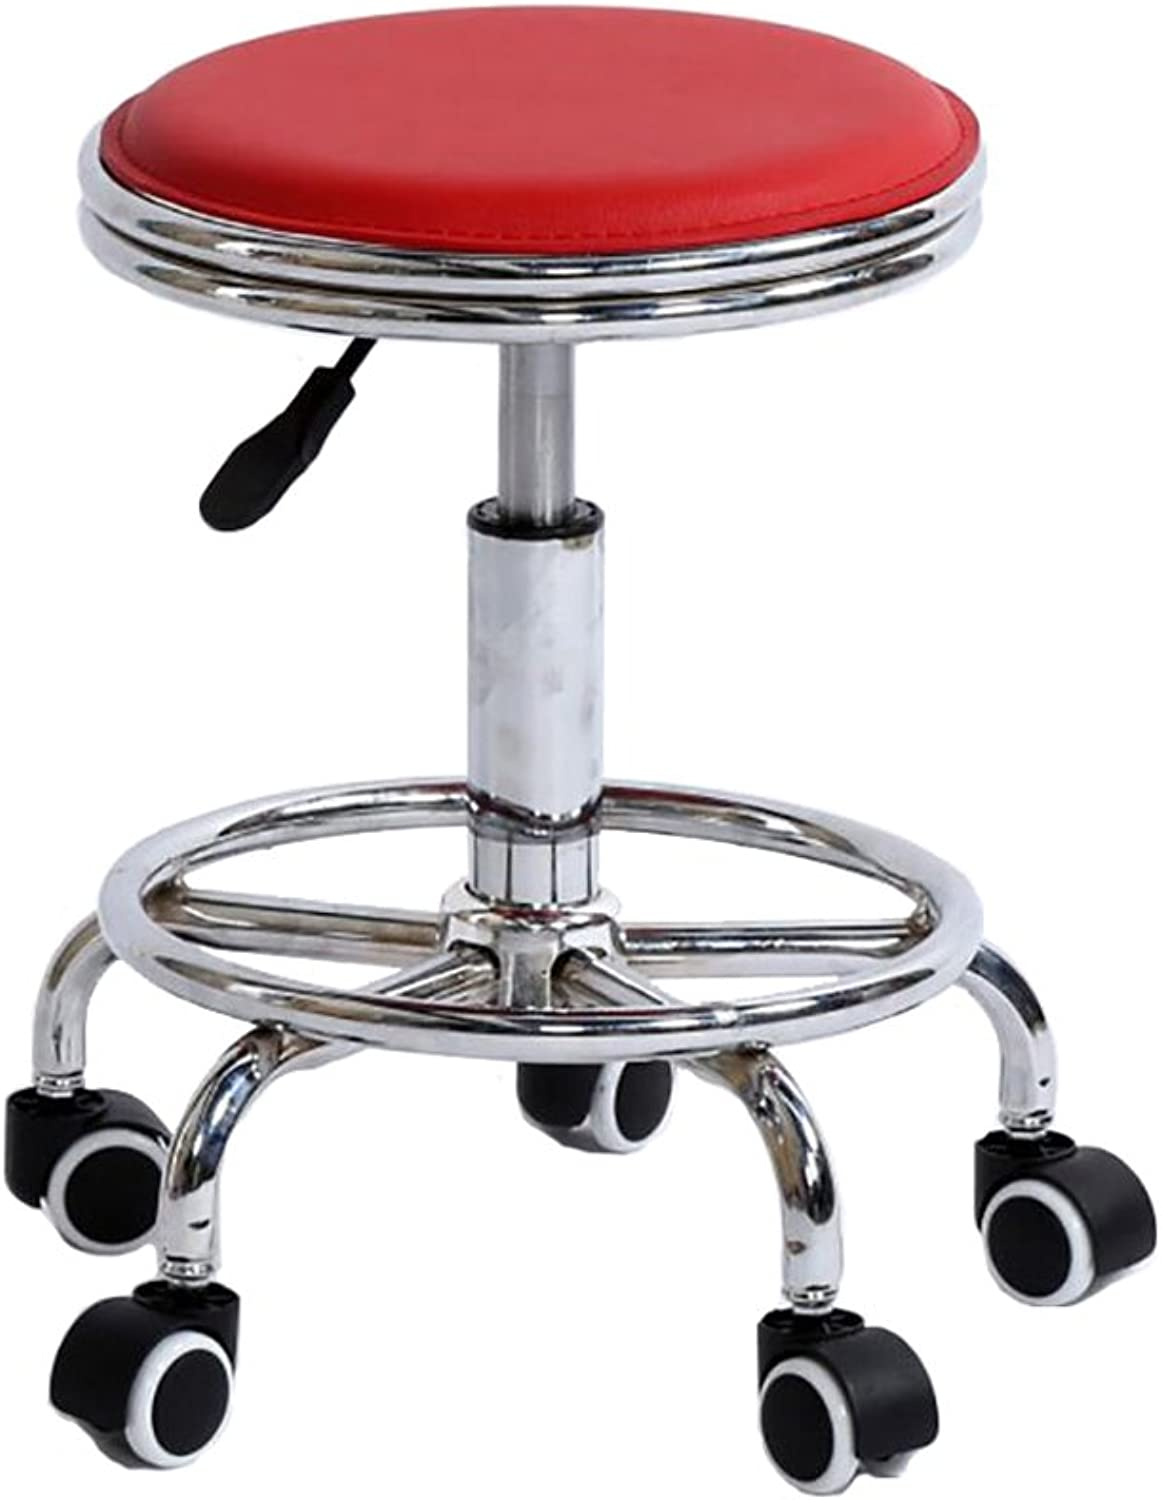 AIDELAI Bar Stool Chair- Bar Stool Bar Bar Chair Lift Beautician Hairdresser Make - Up Chairs Large Chair Laboratory Swivel Chair Saddle Seat (color   A, Size    2)